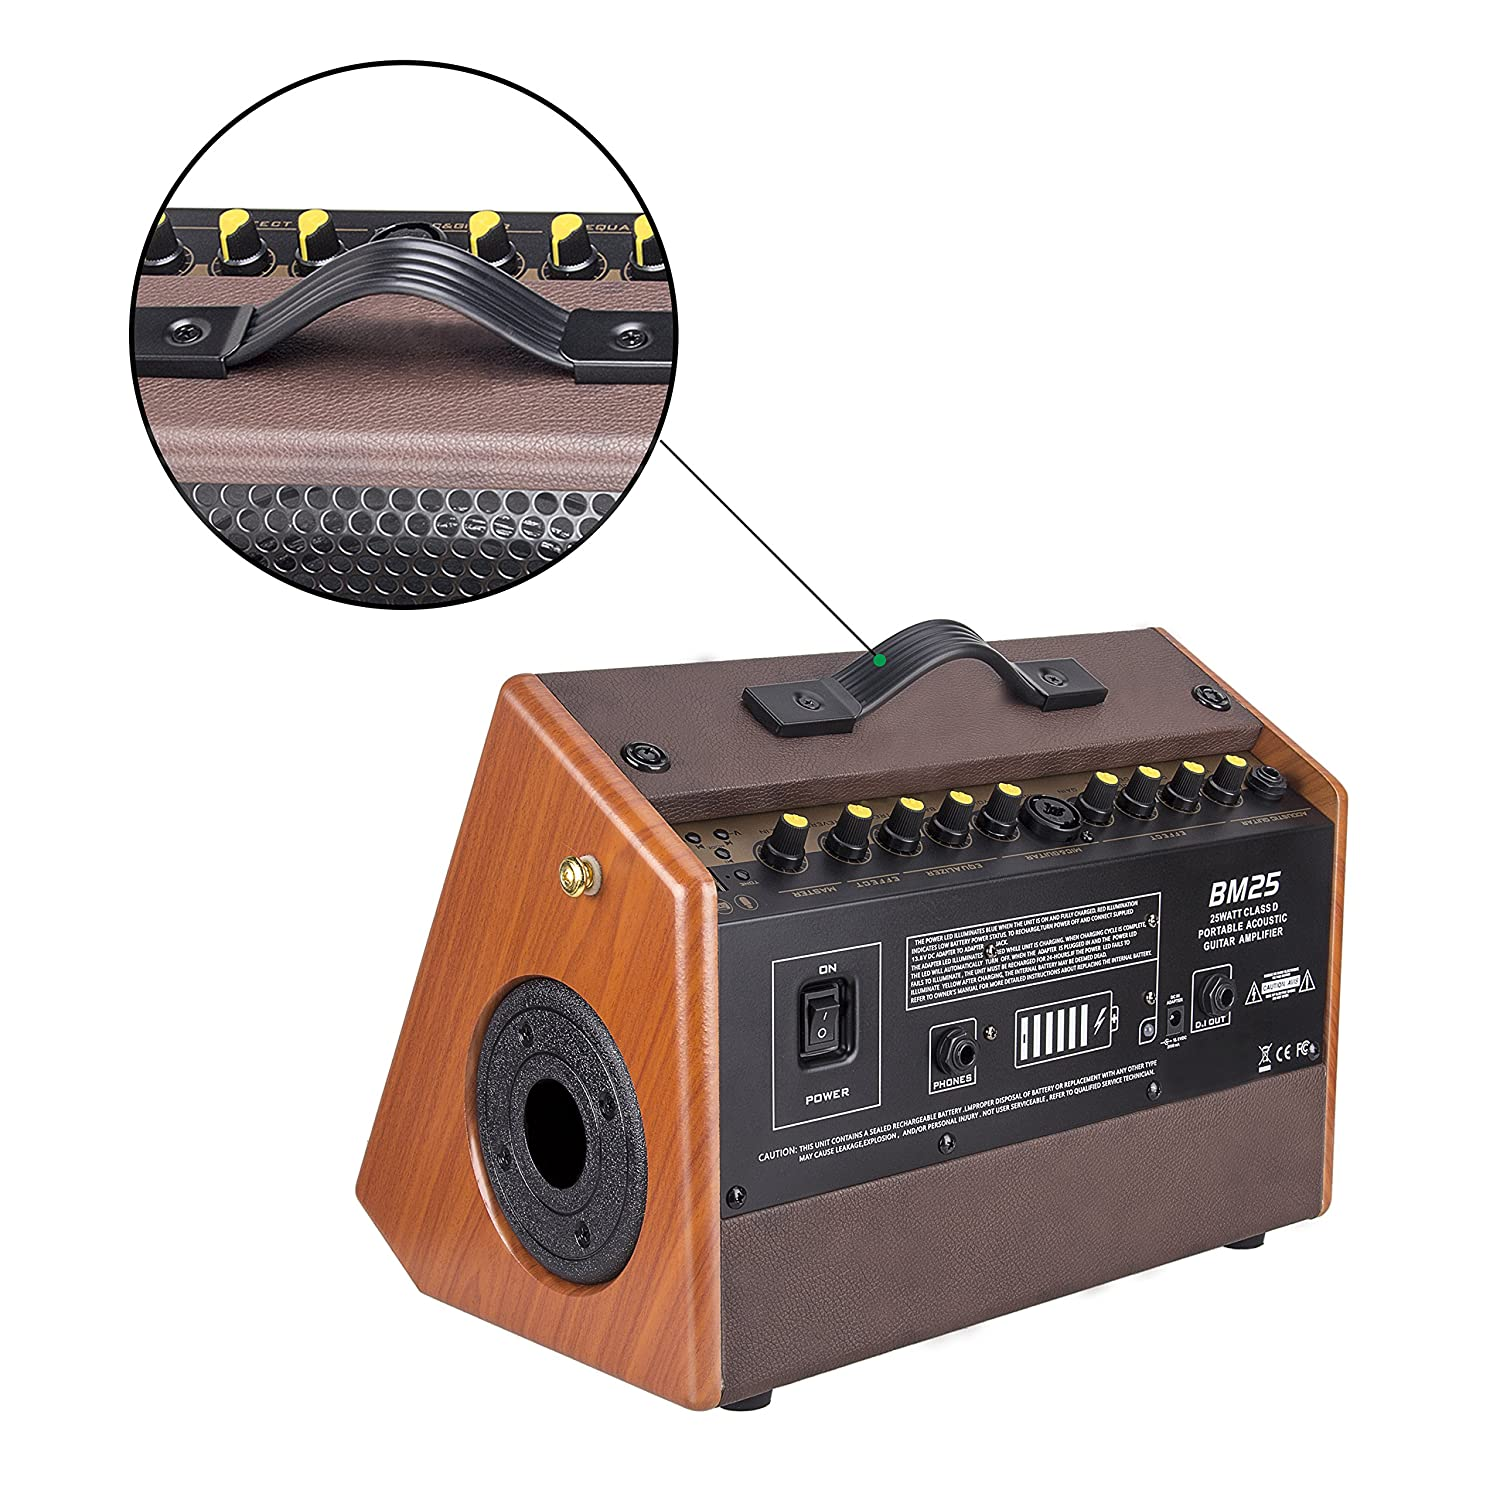 Mugig Guitar Amplifier Rechargeable Speaker Works With Or Music Home Stereo Powered Subwoofer Acoustic And Electric Voice Karaoke 25w Musical Instruments